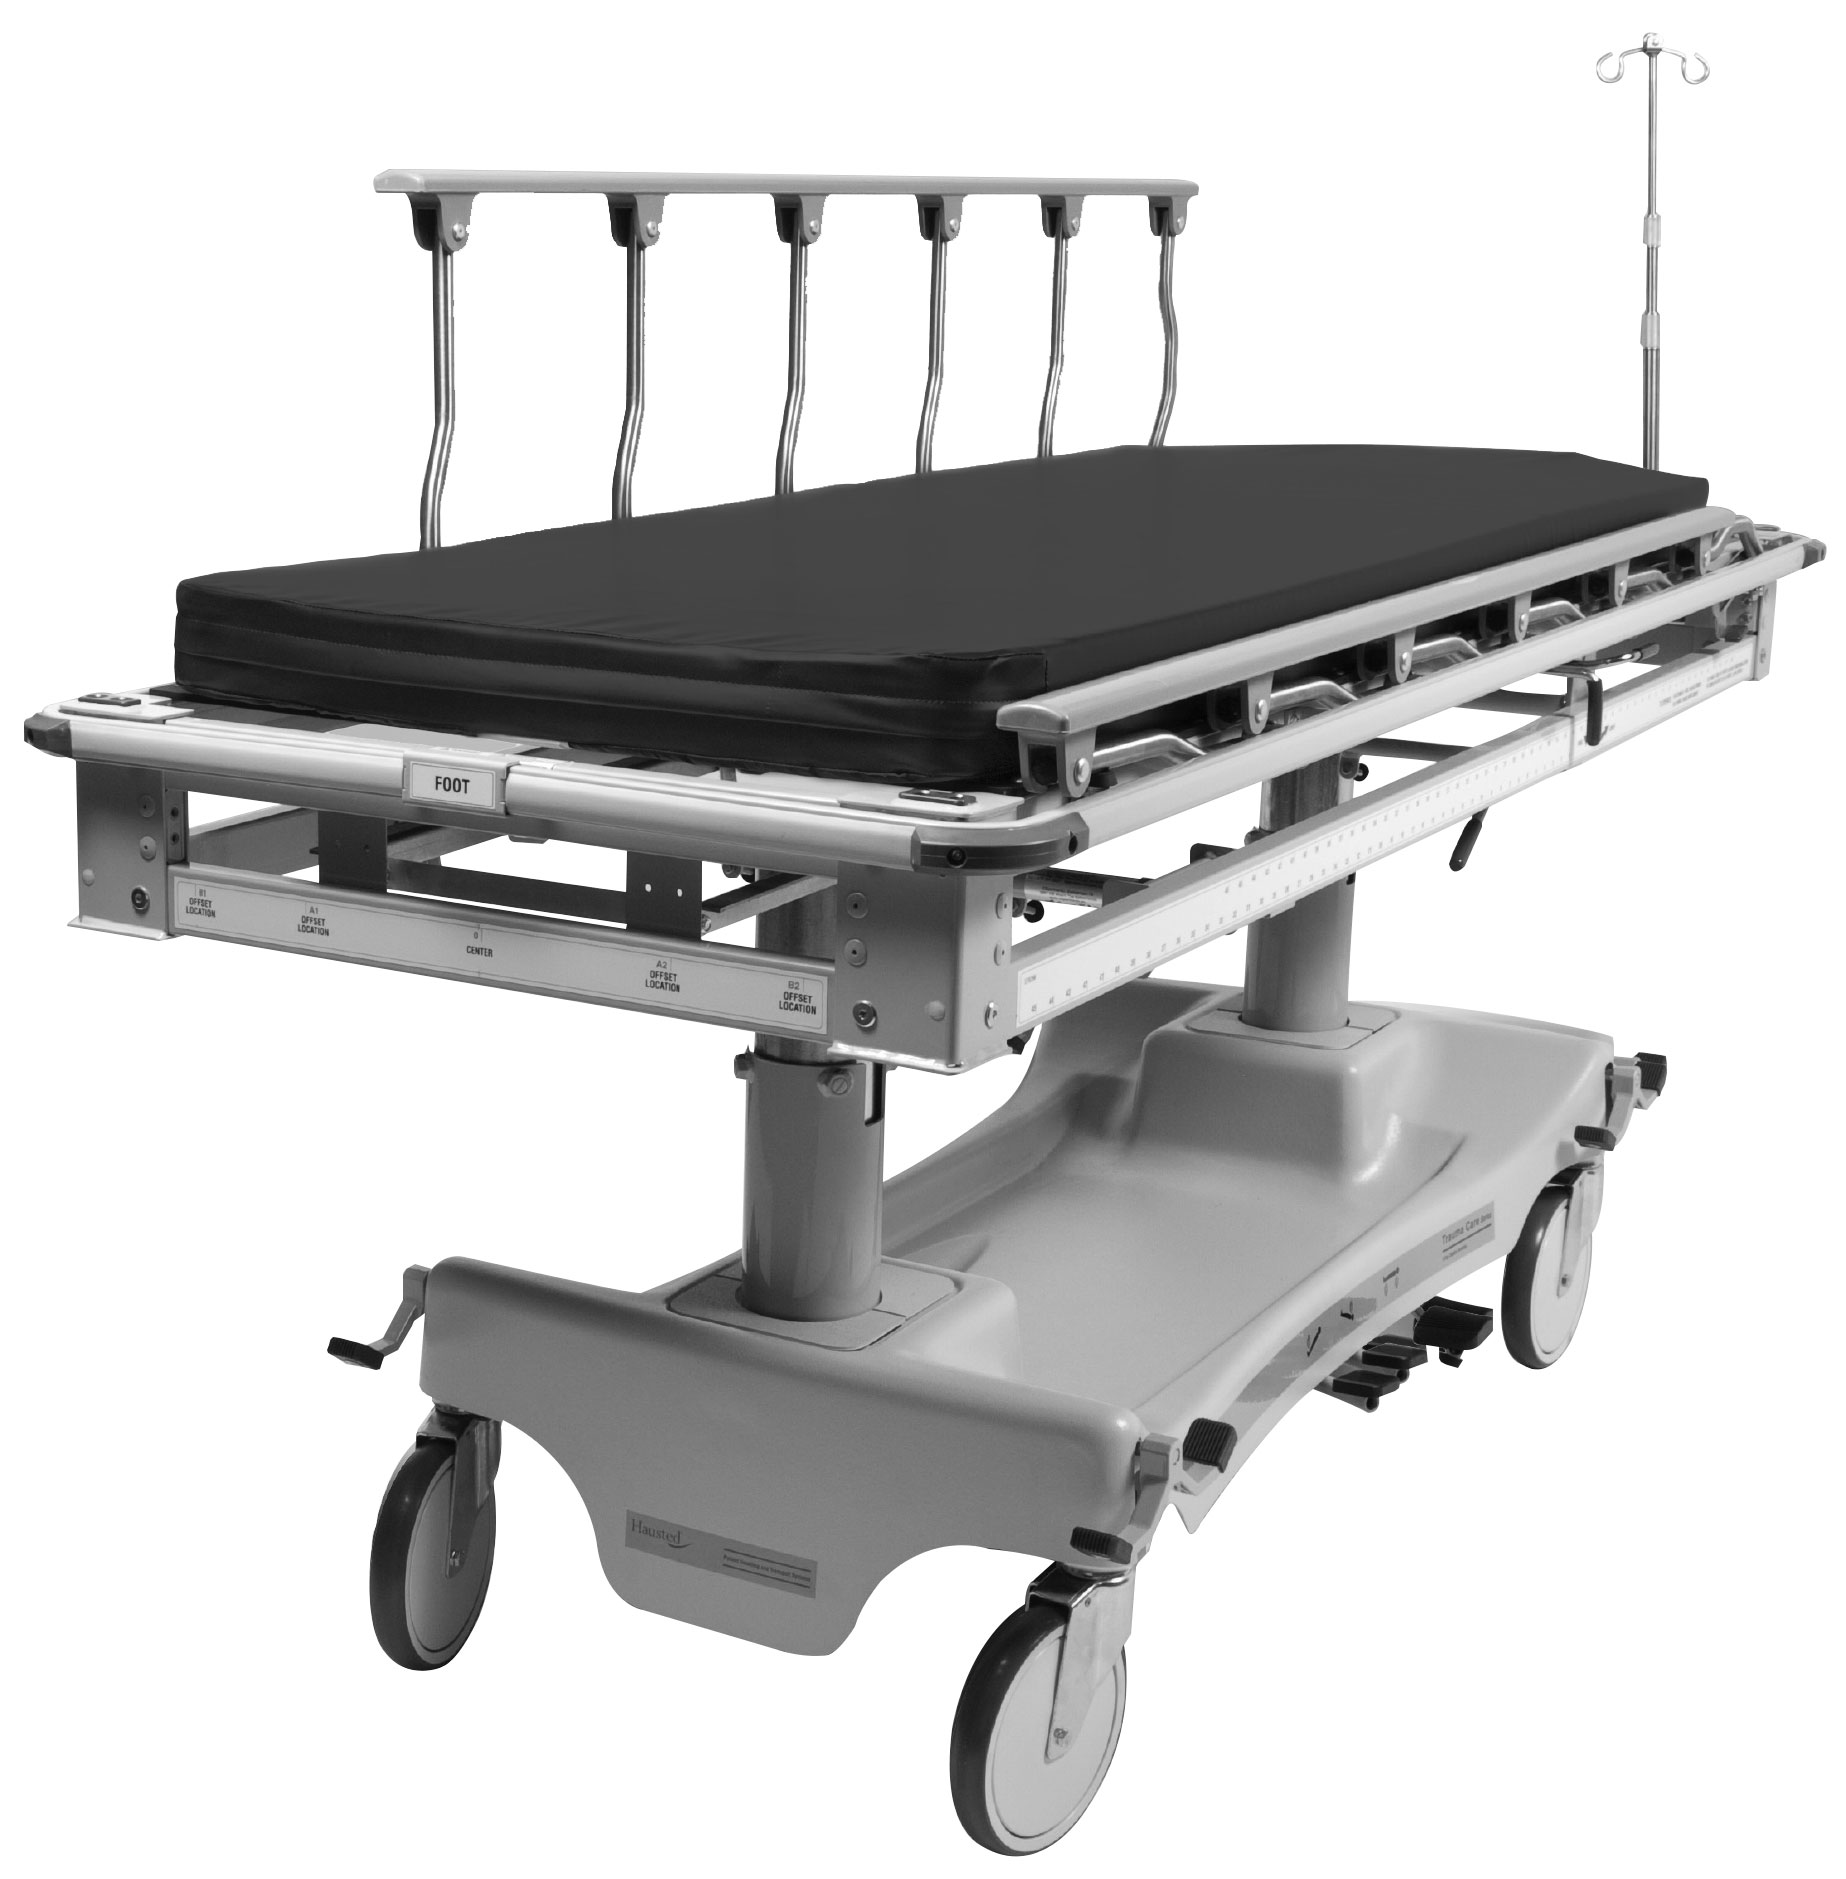 Hausted trauma stretcher